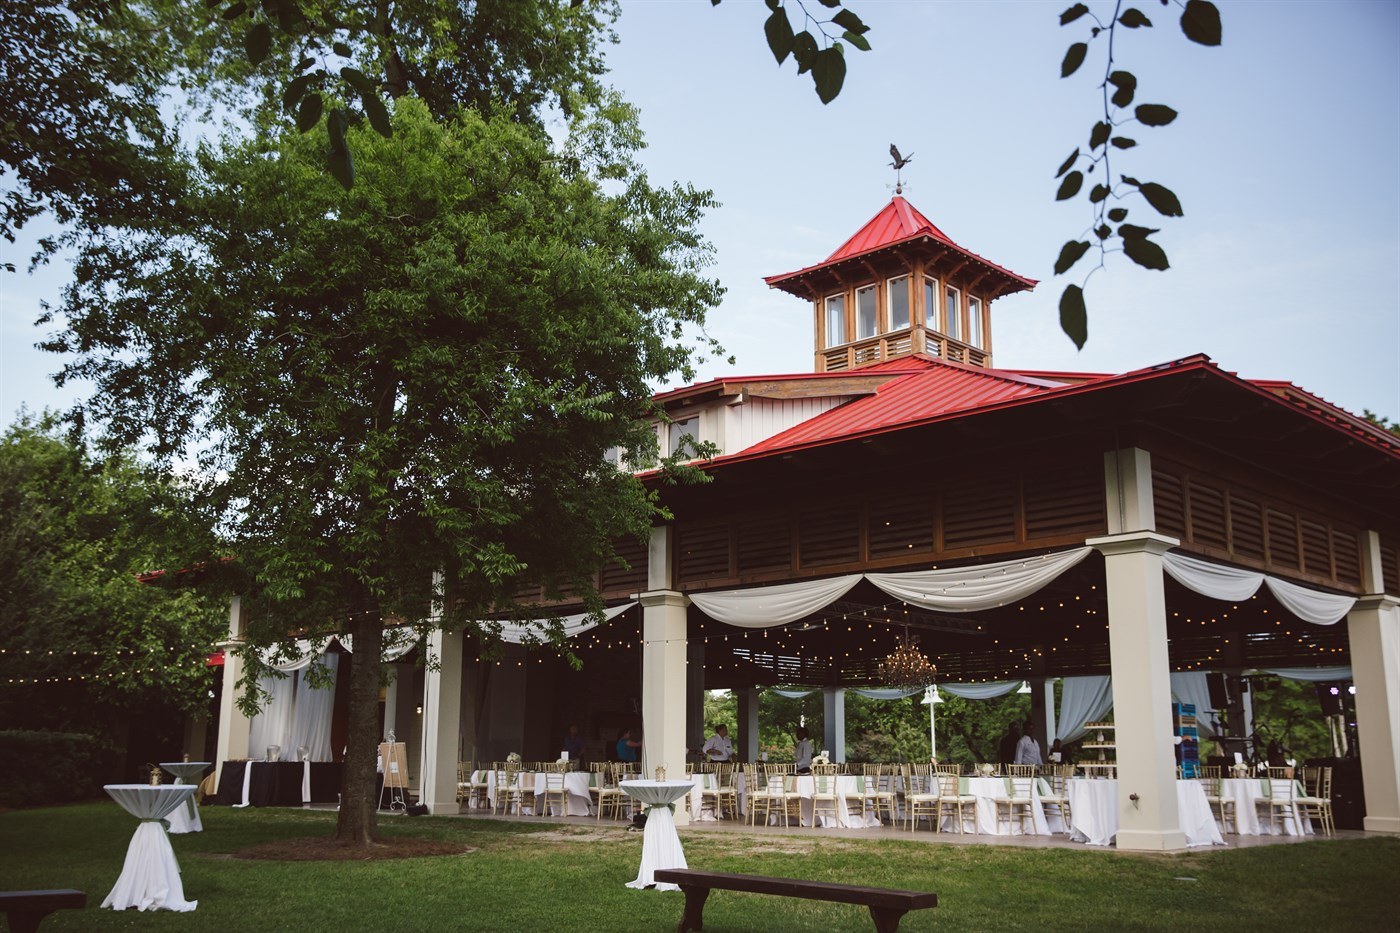 Very Spacious and Covered Outdoor Event Venue